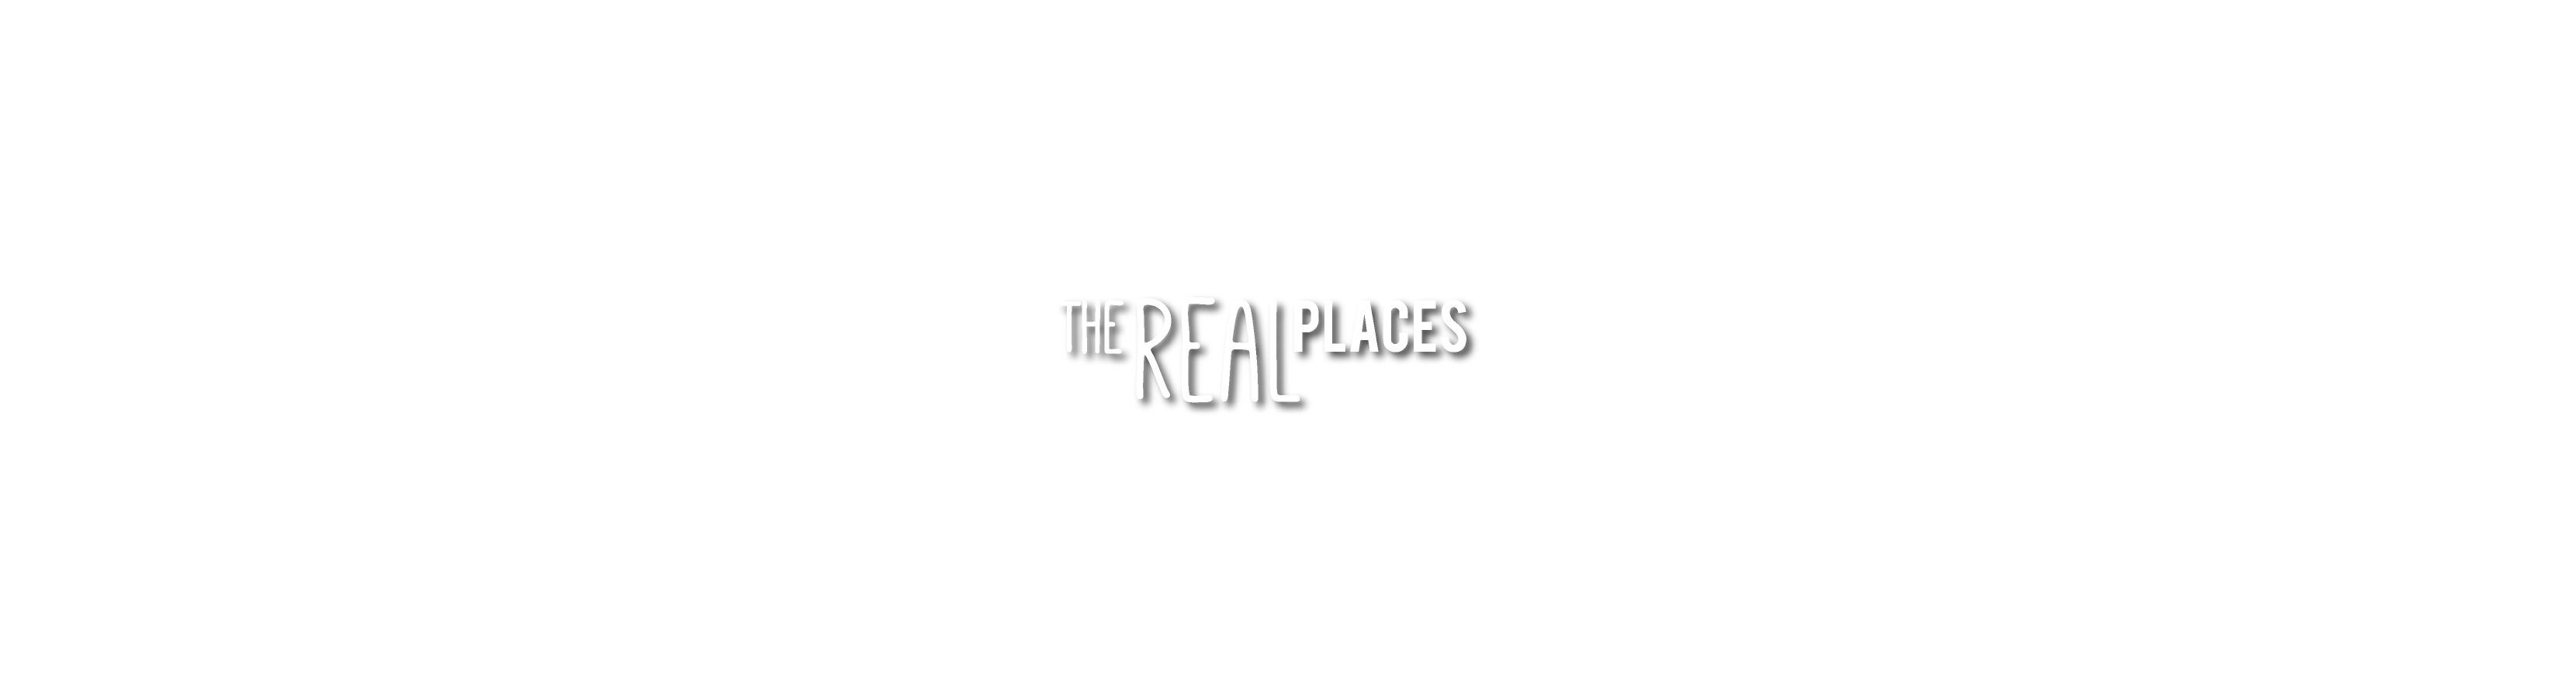 the real places slide